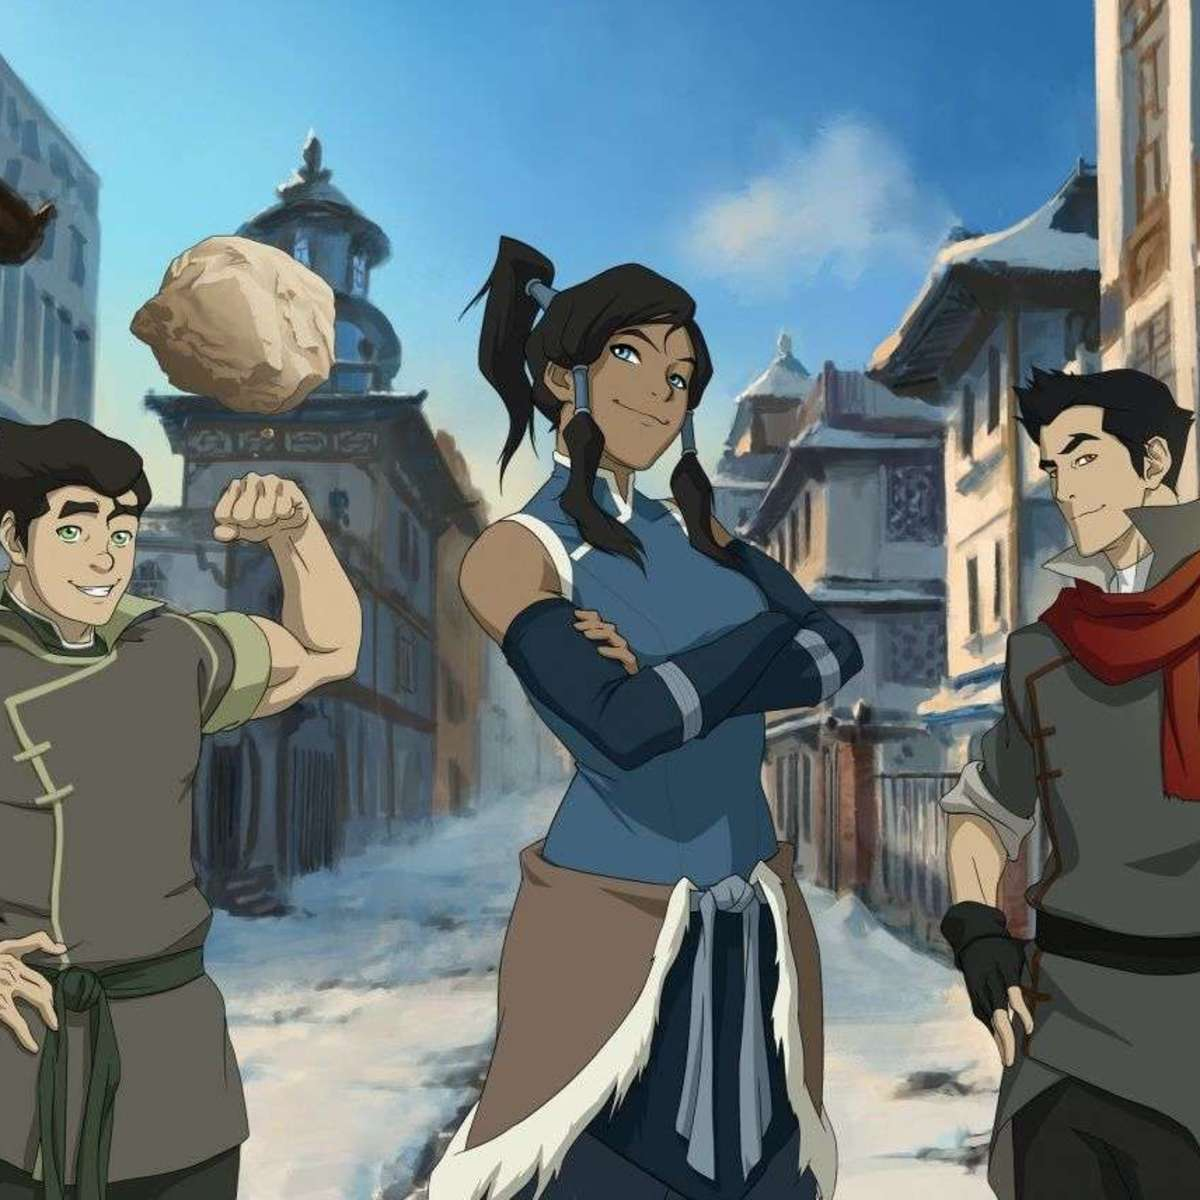 The Legend of Korra Promo Image